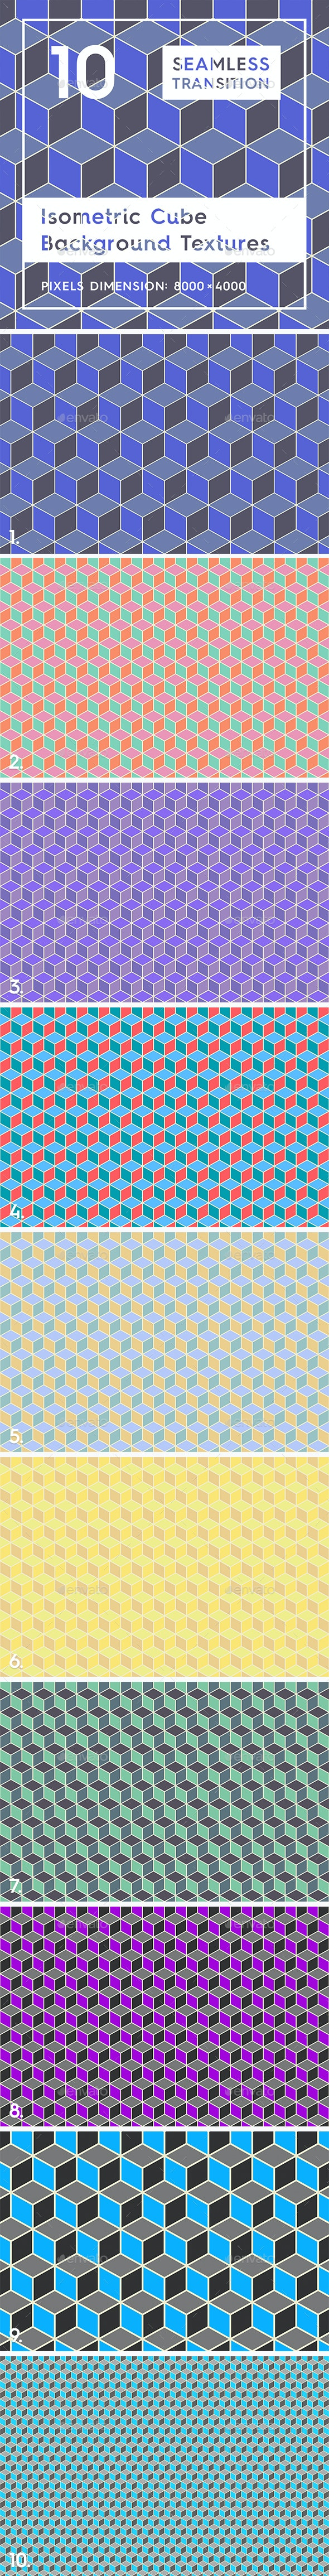 10 Isometric 3D Cubes Backgrounds - Patterns Backgrounds